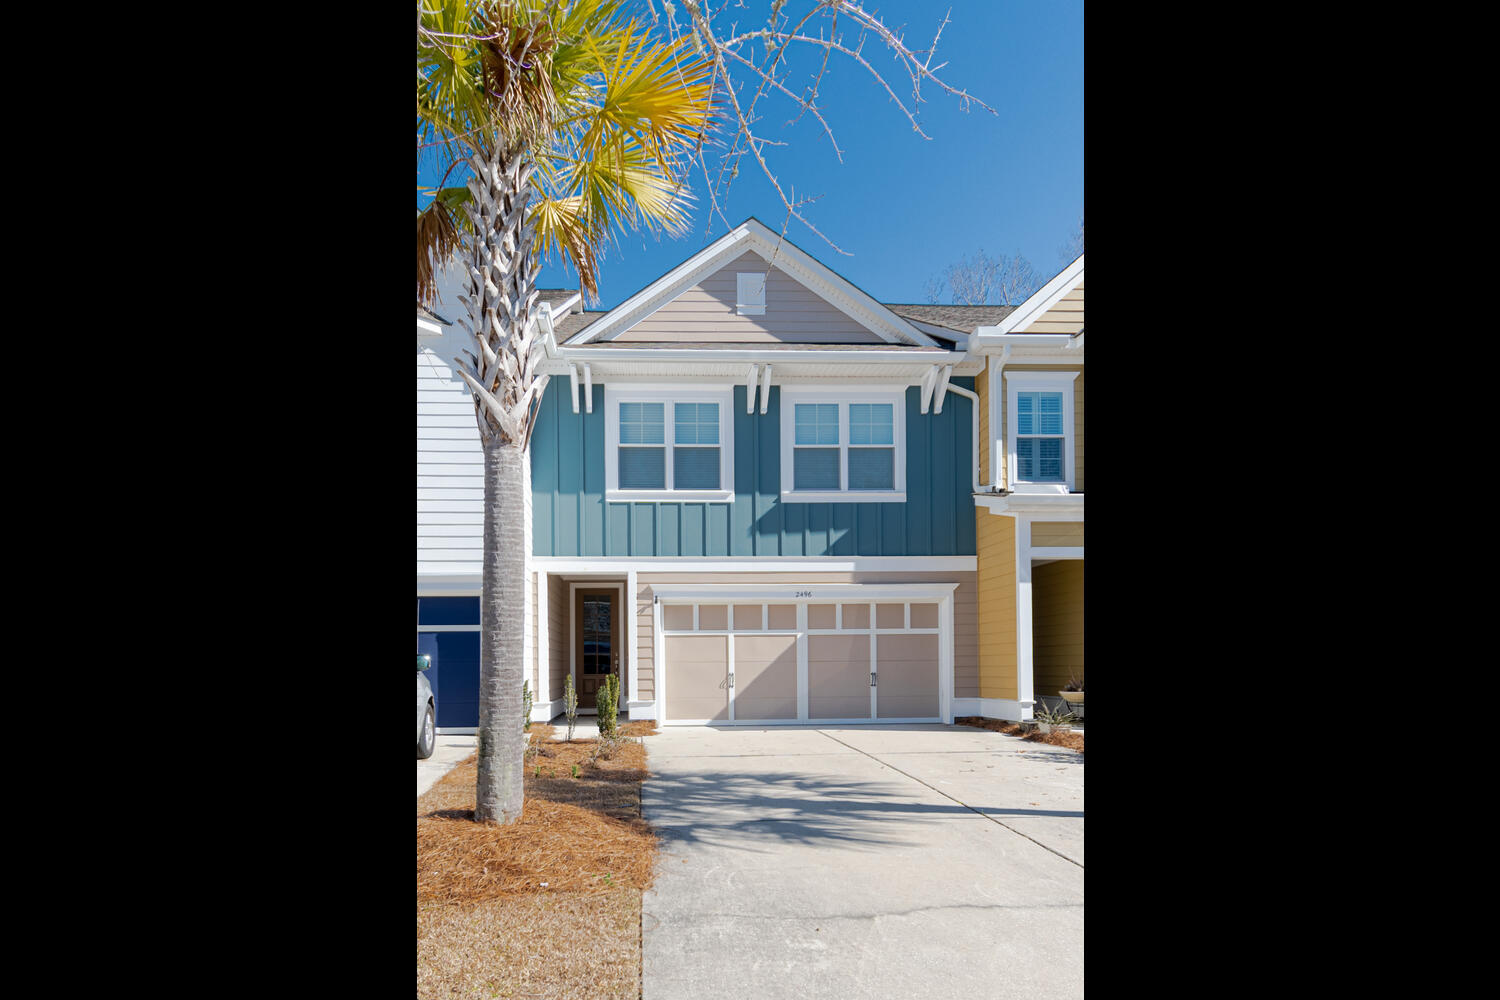 Dunes West Homes For Sale - 2496 Kings Gate, Mount Pleasant, SC - 15